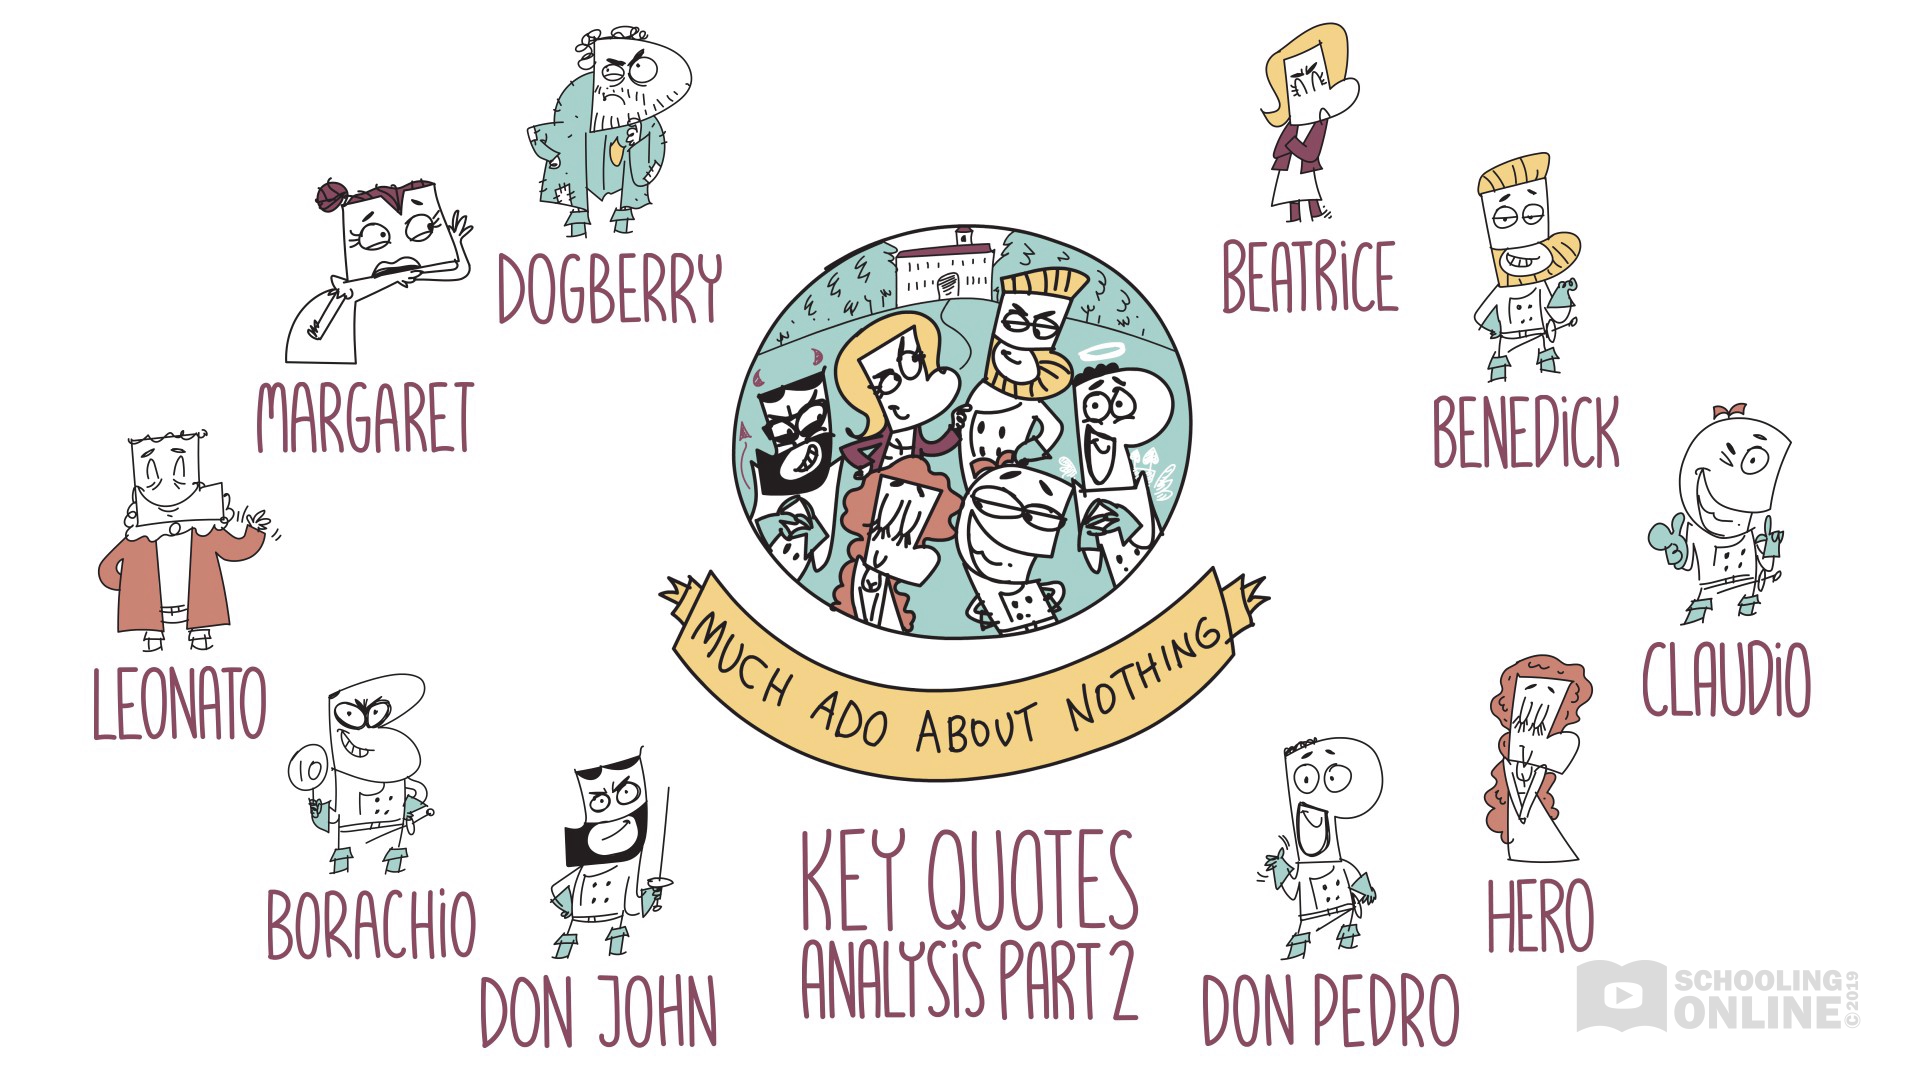 Much Ado About Nothing Key Quotes Analysis Part 2 - Shakespeare Today Series